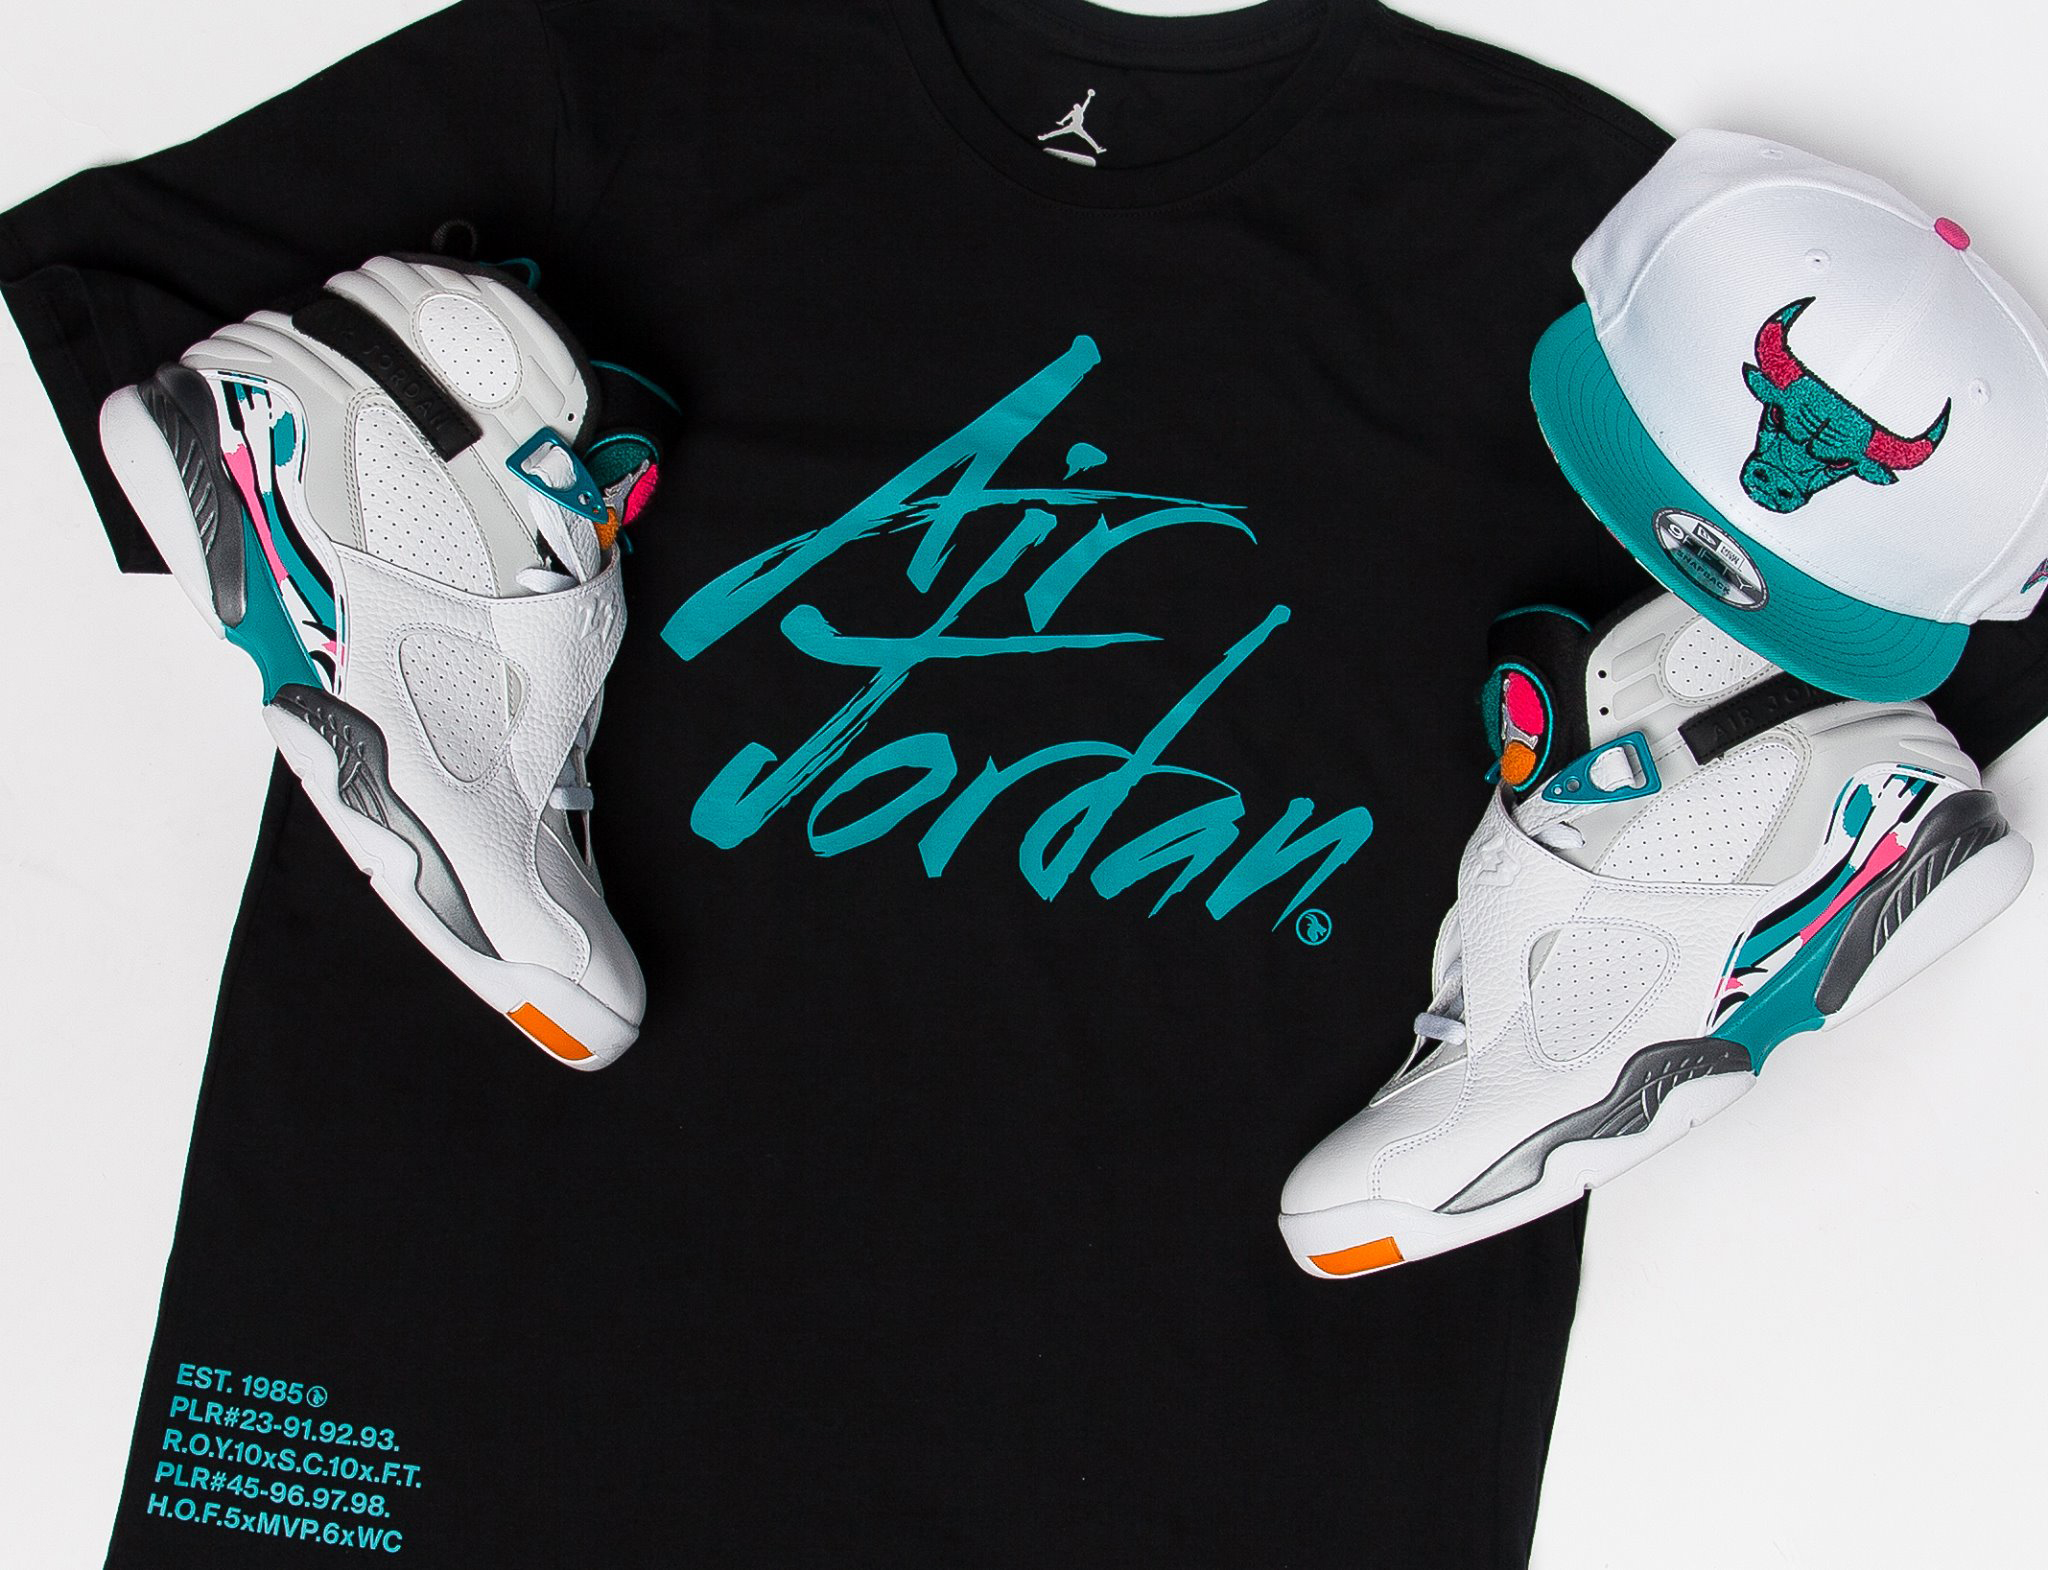 d427b03e ... closeout jordan 8 south beach shirt and bulls hat 7a463 ae7cd